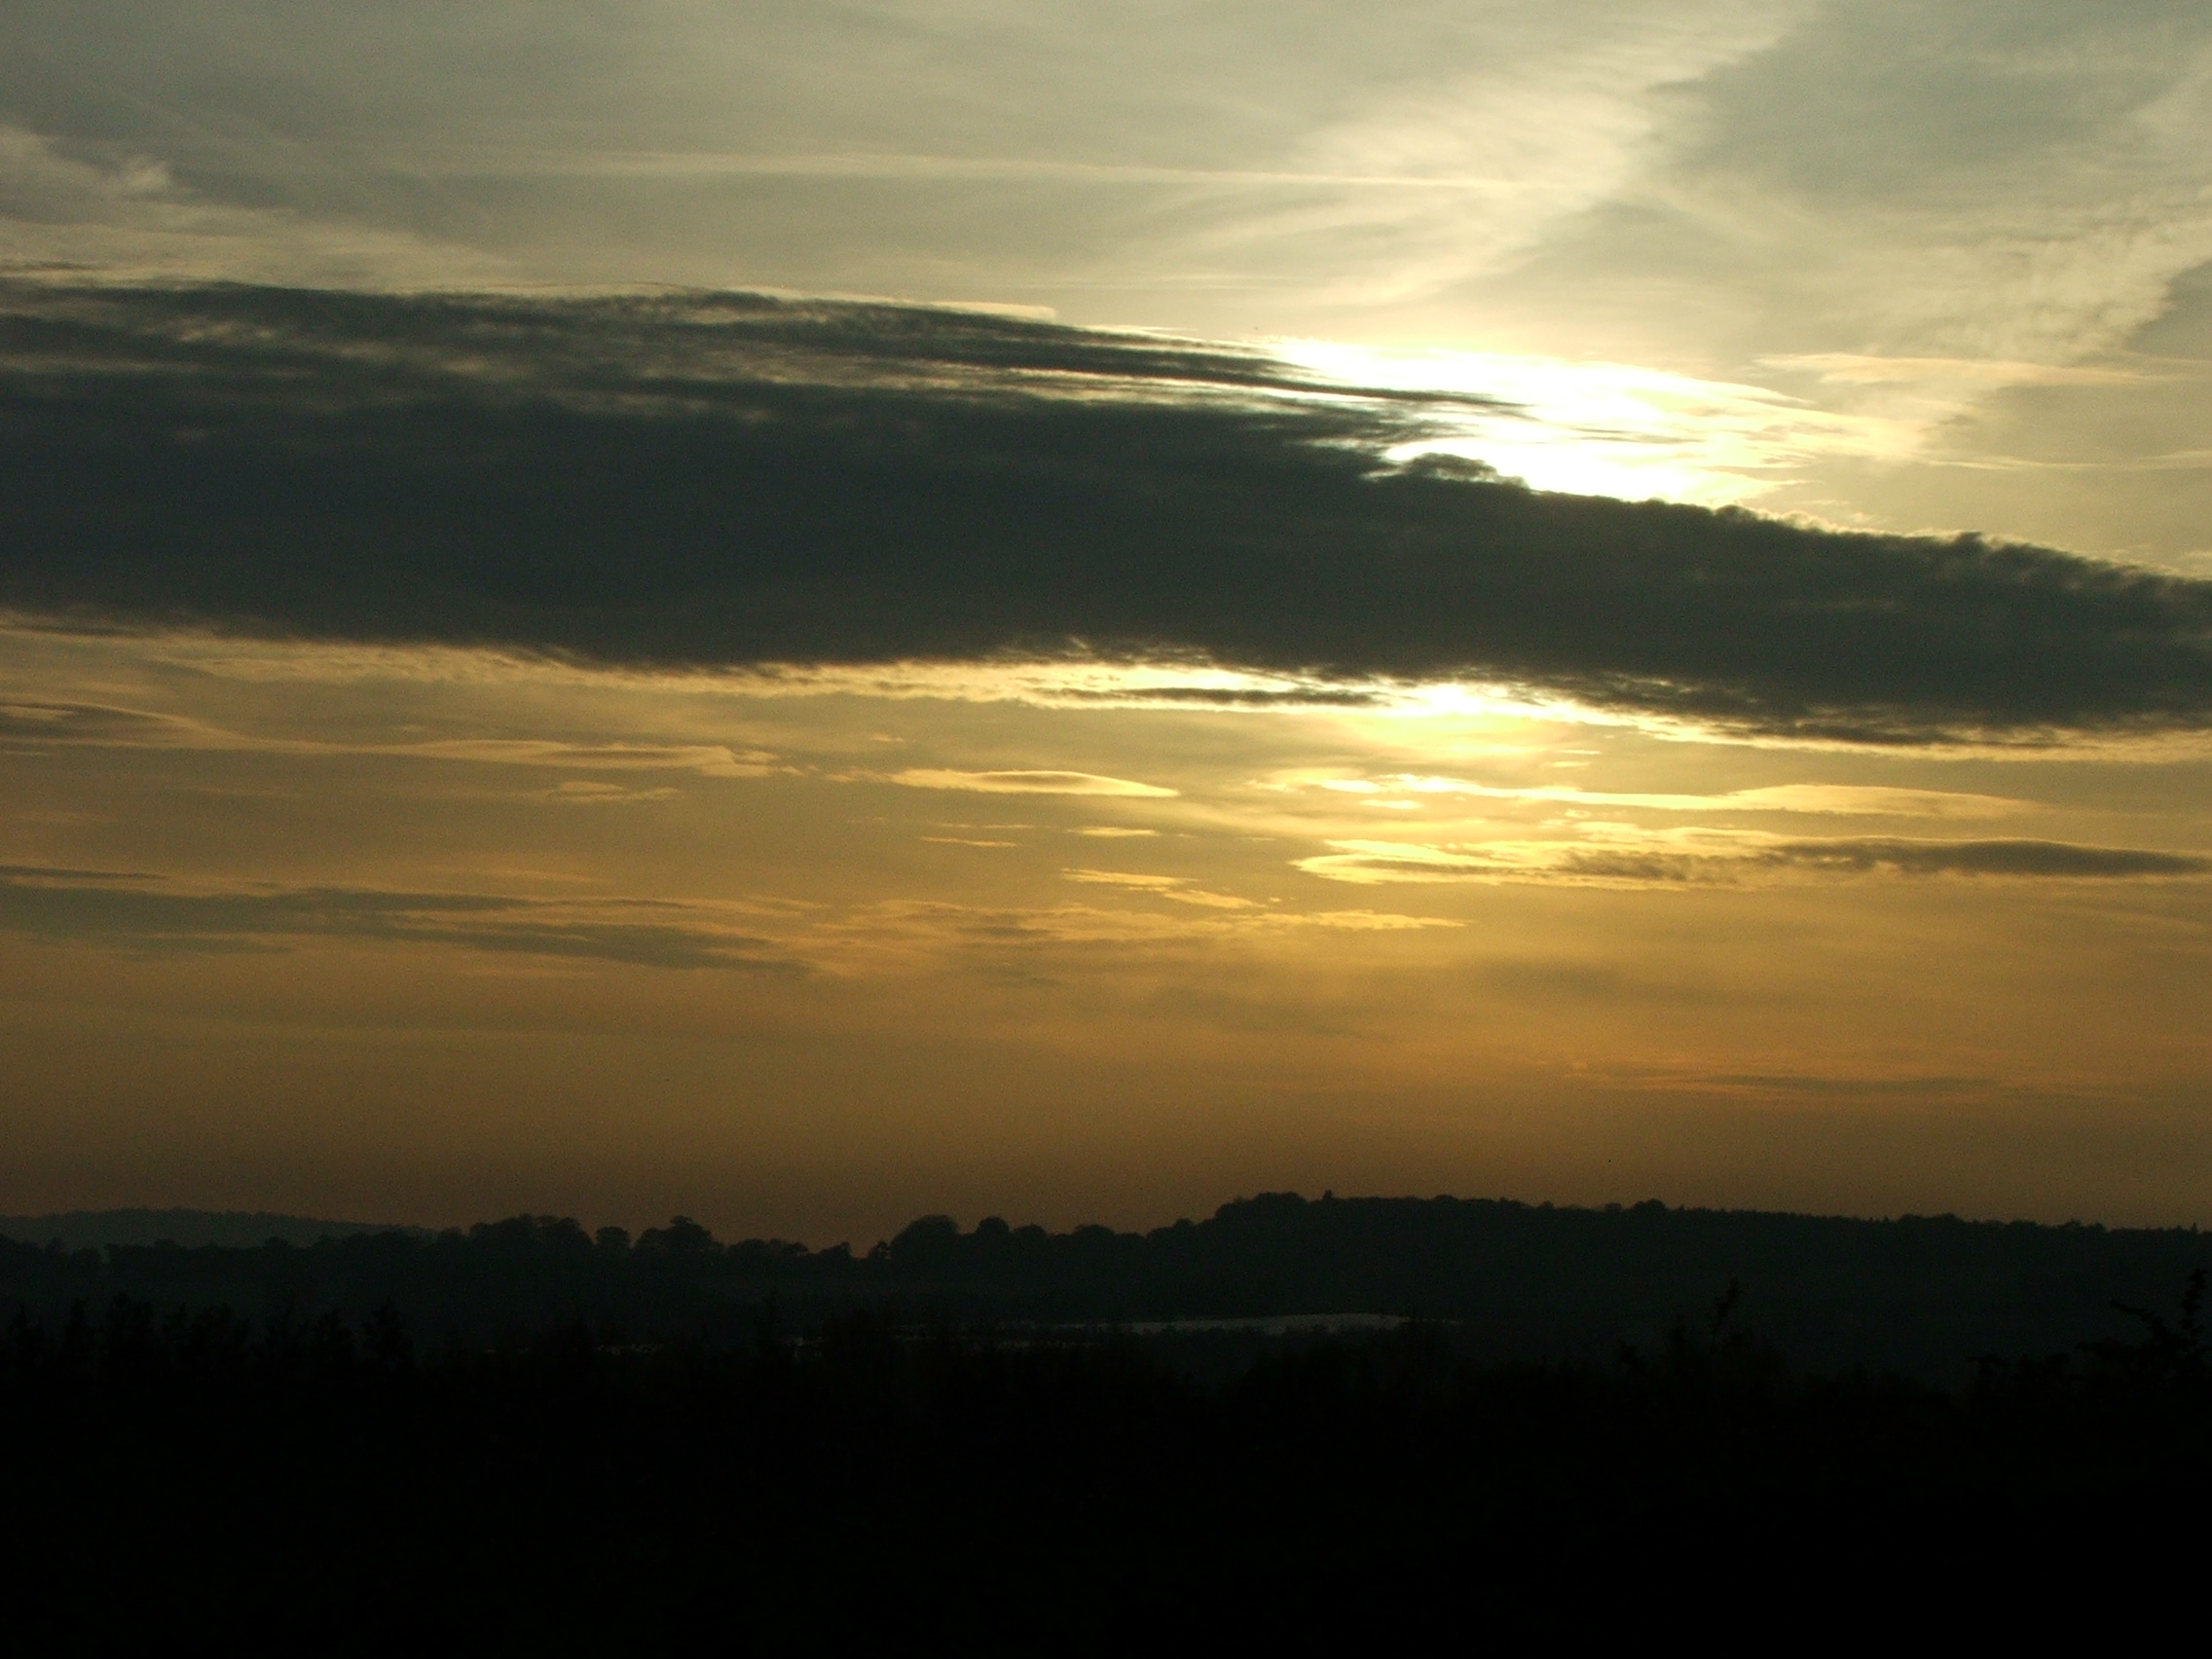 Sunset over Royden